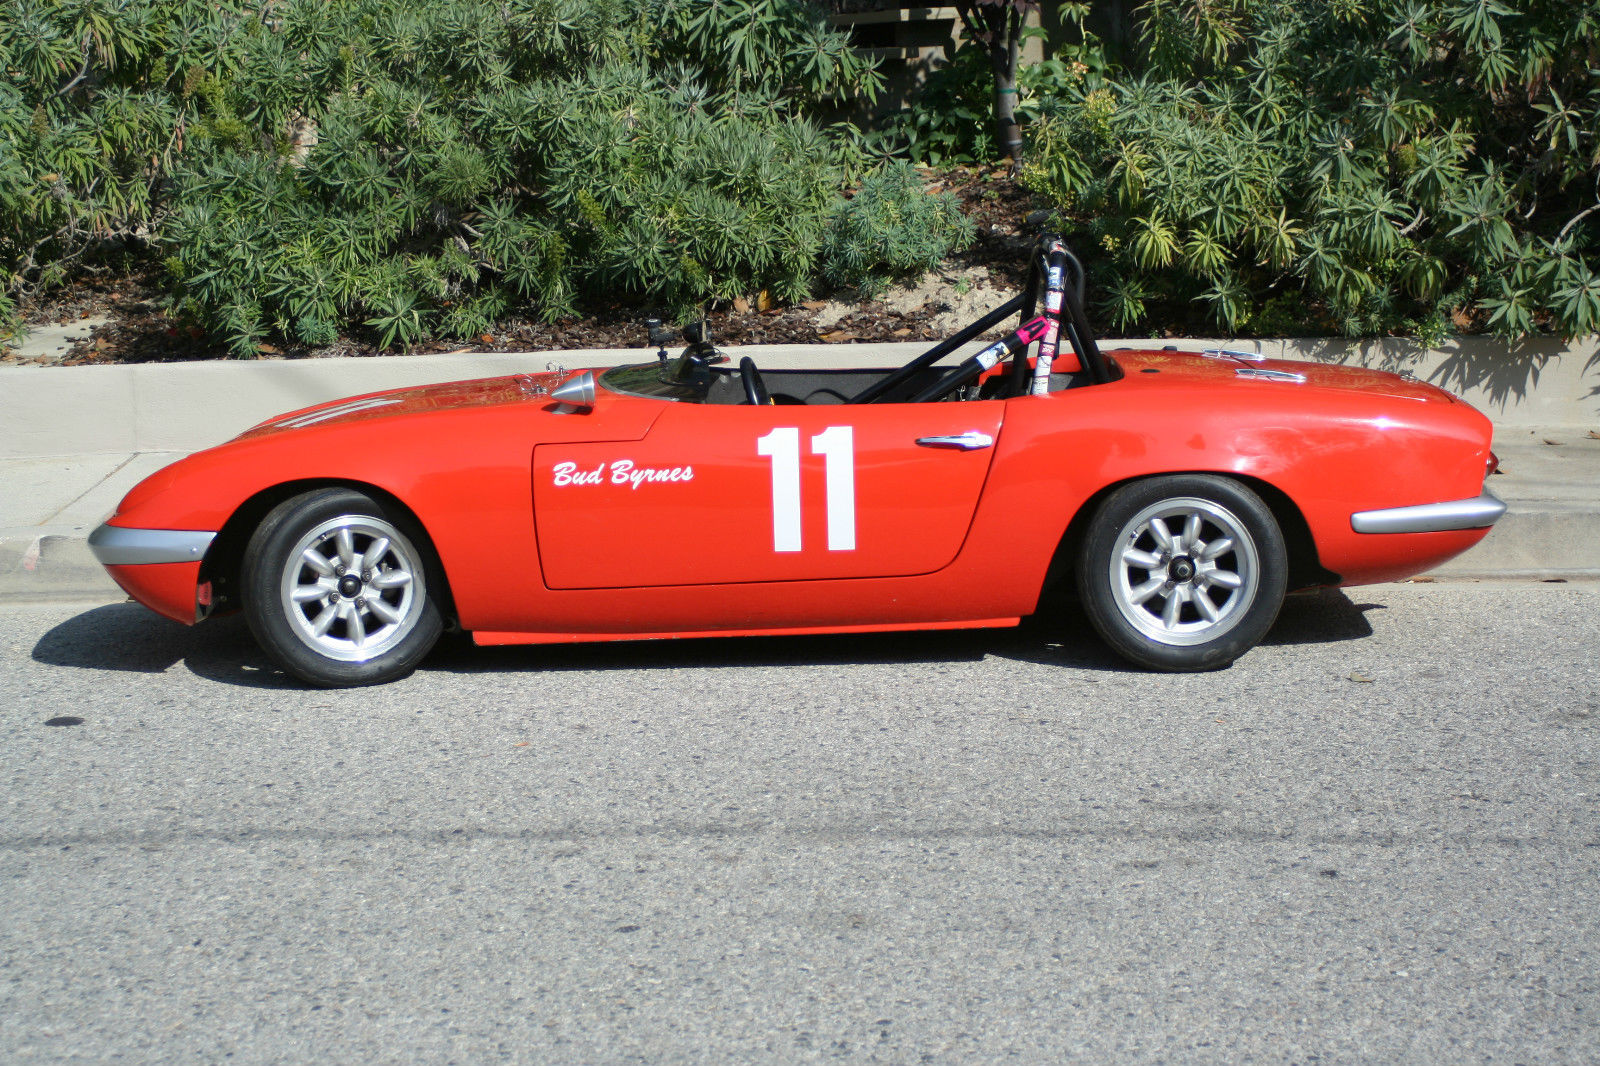 1967 Lotus Elan - 26R specs! Race Car For Sale - $52500